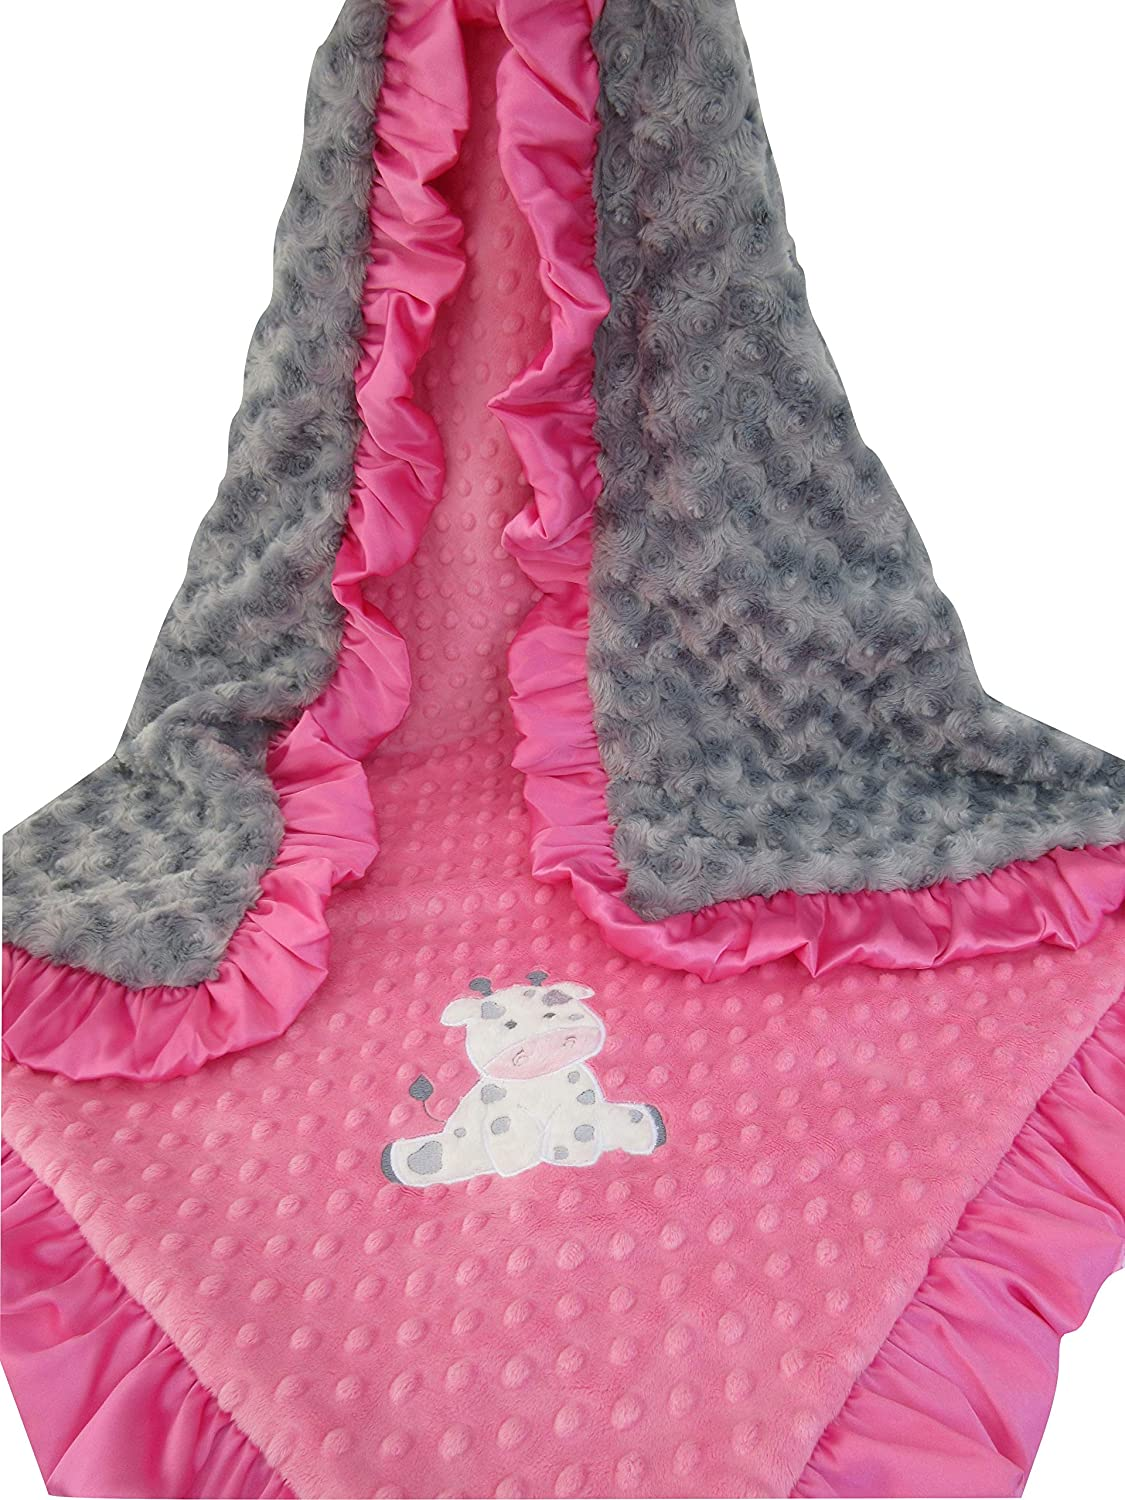 Hot pink and Gray Paws Minky Monogrammed Baby Blanket Puppy Gift baby girl gift Blanket with name Birth Stats Newborn Custom